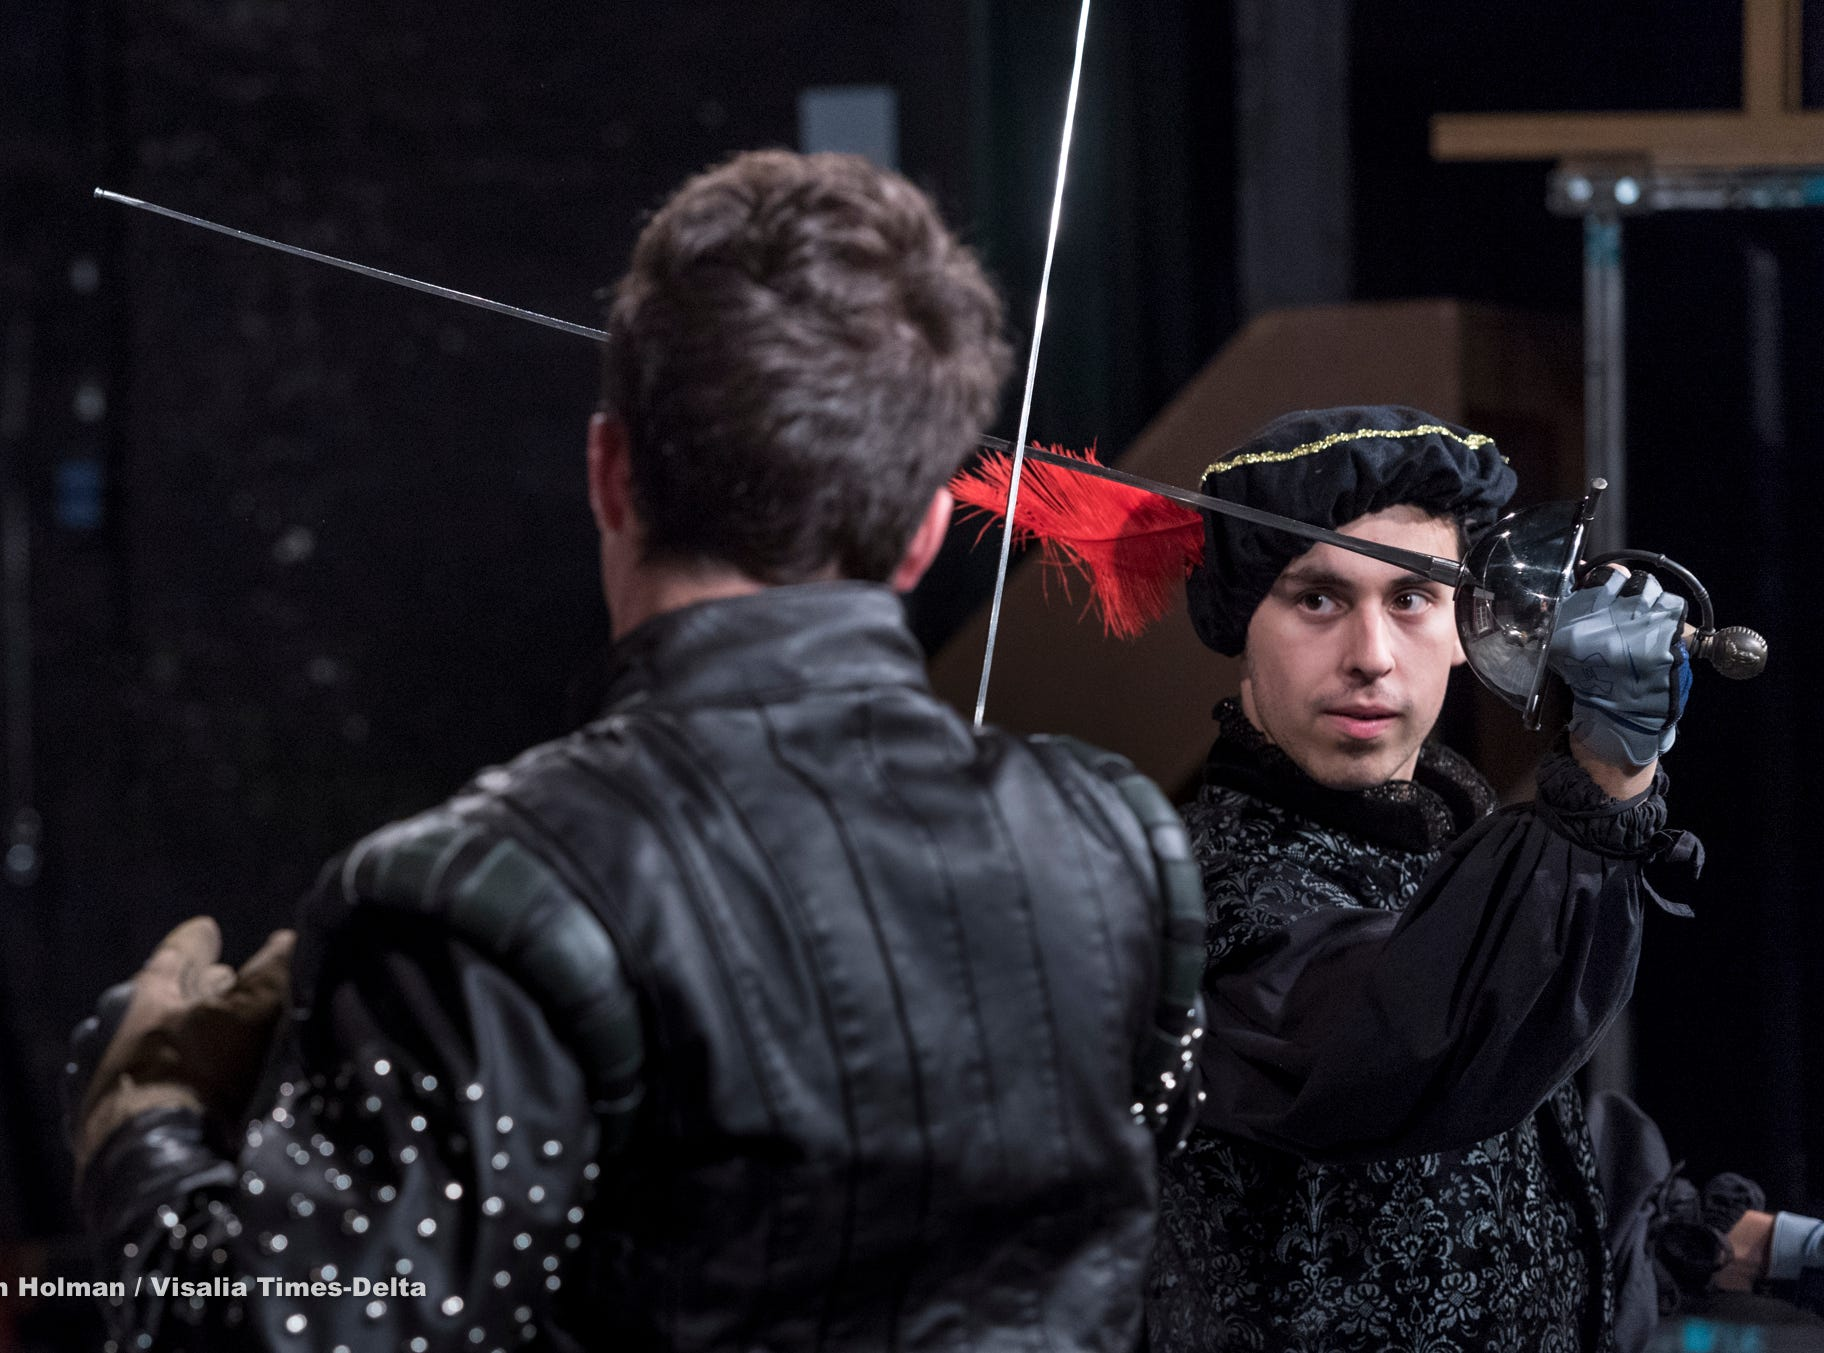 Dominic Chapa, right, and Nick Ray rehearse for Visalia Players' production of Shakespeare in Love at the Ice House Theater on Monday, July 23, 2018.